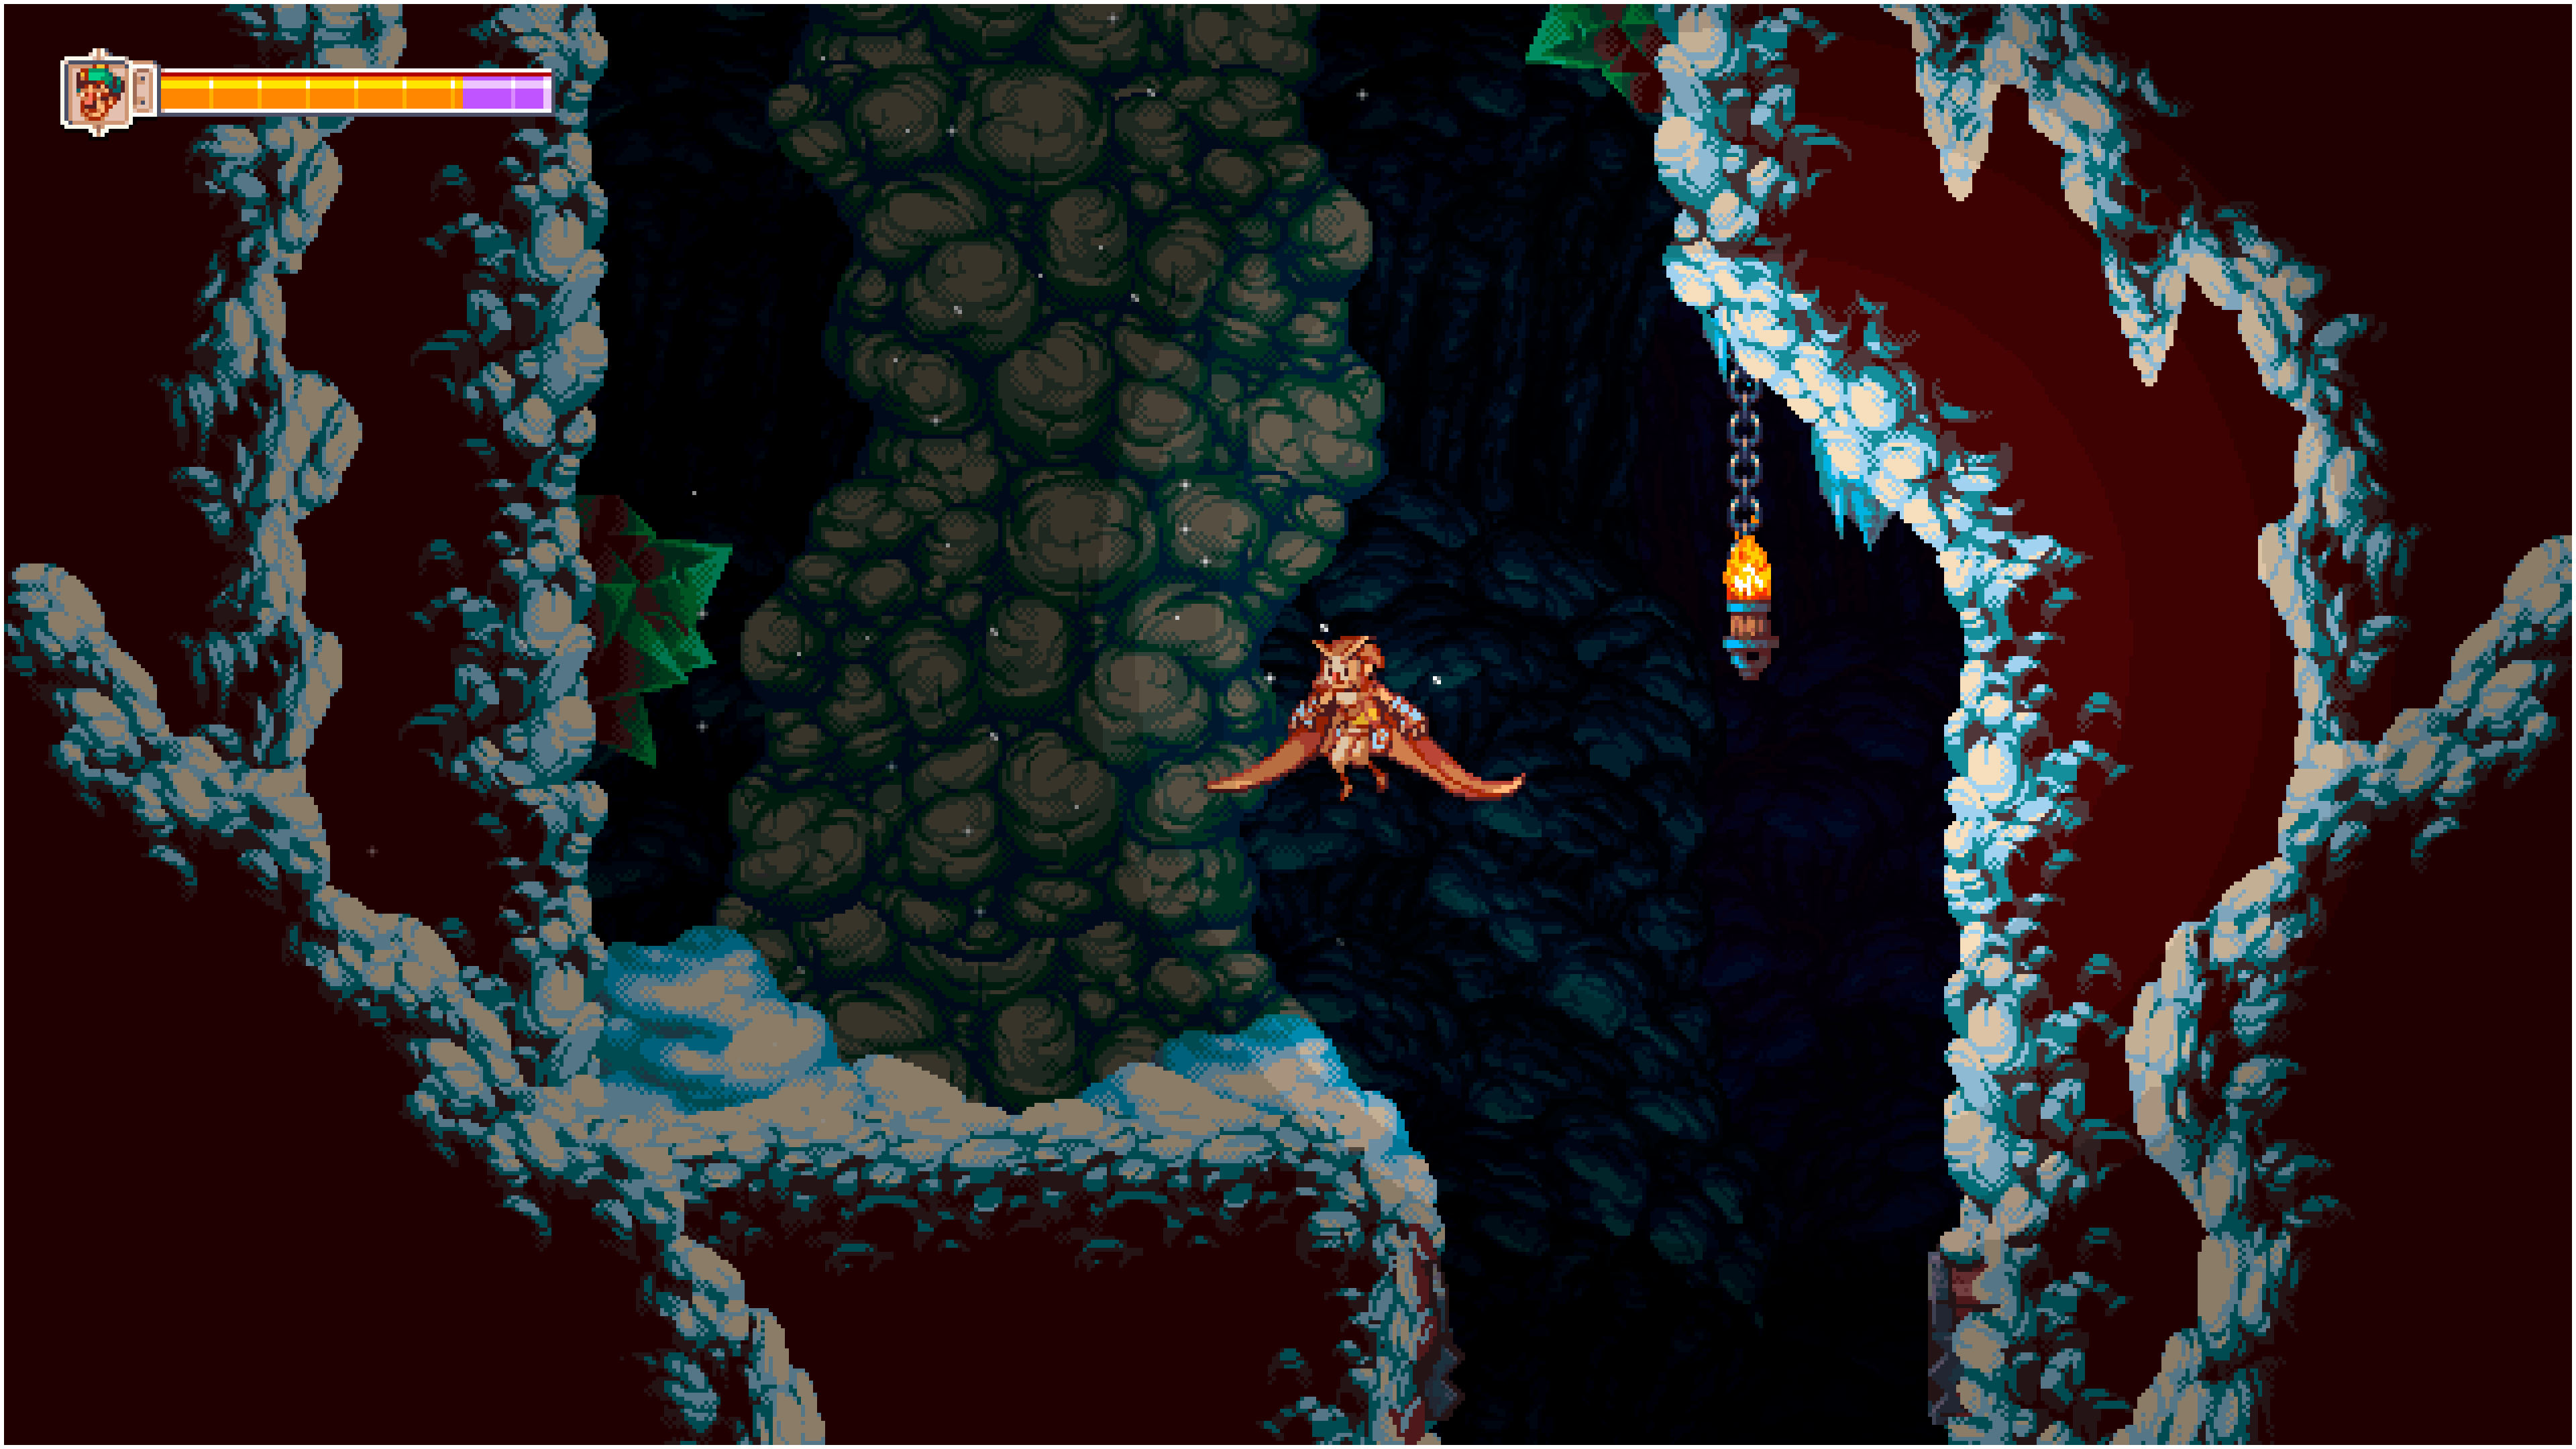 Otus tackles a dark and scary cave.